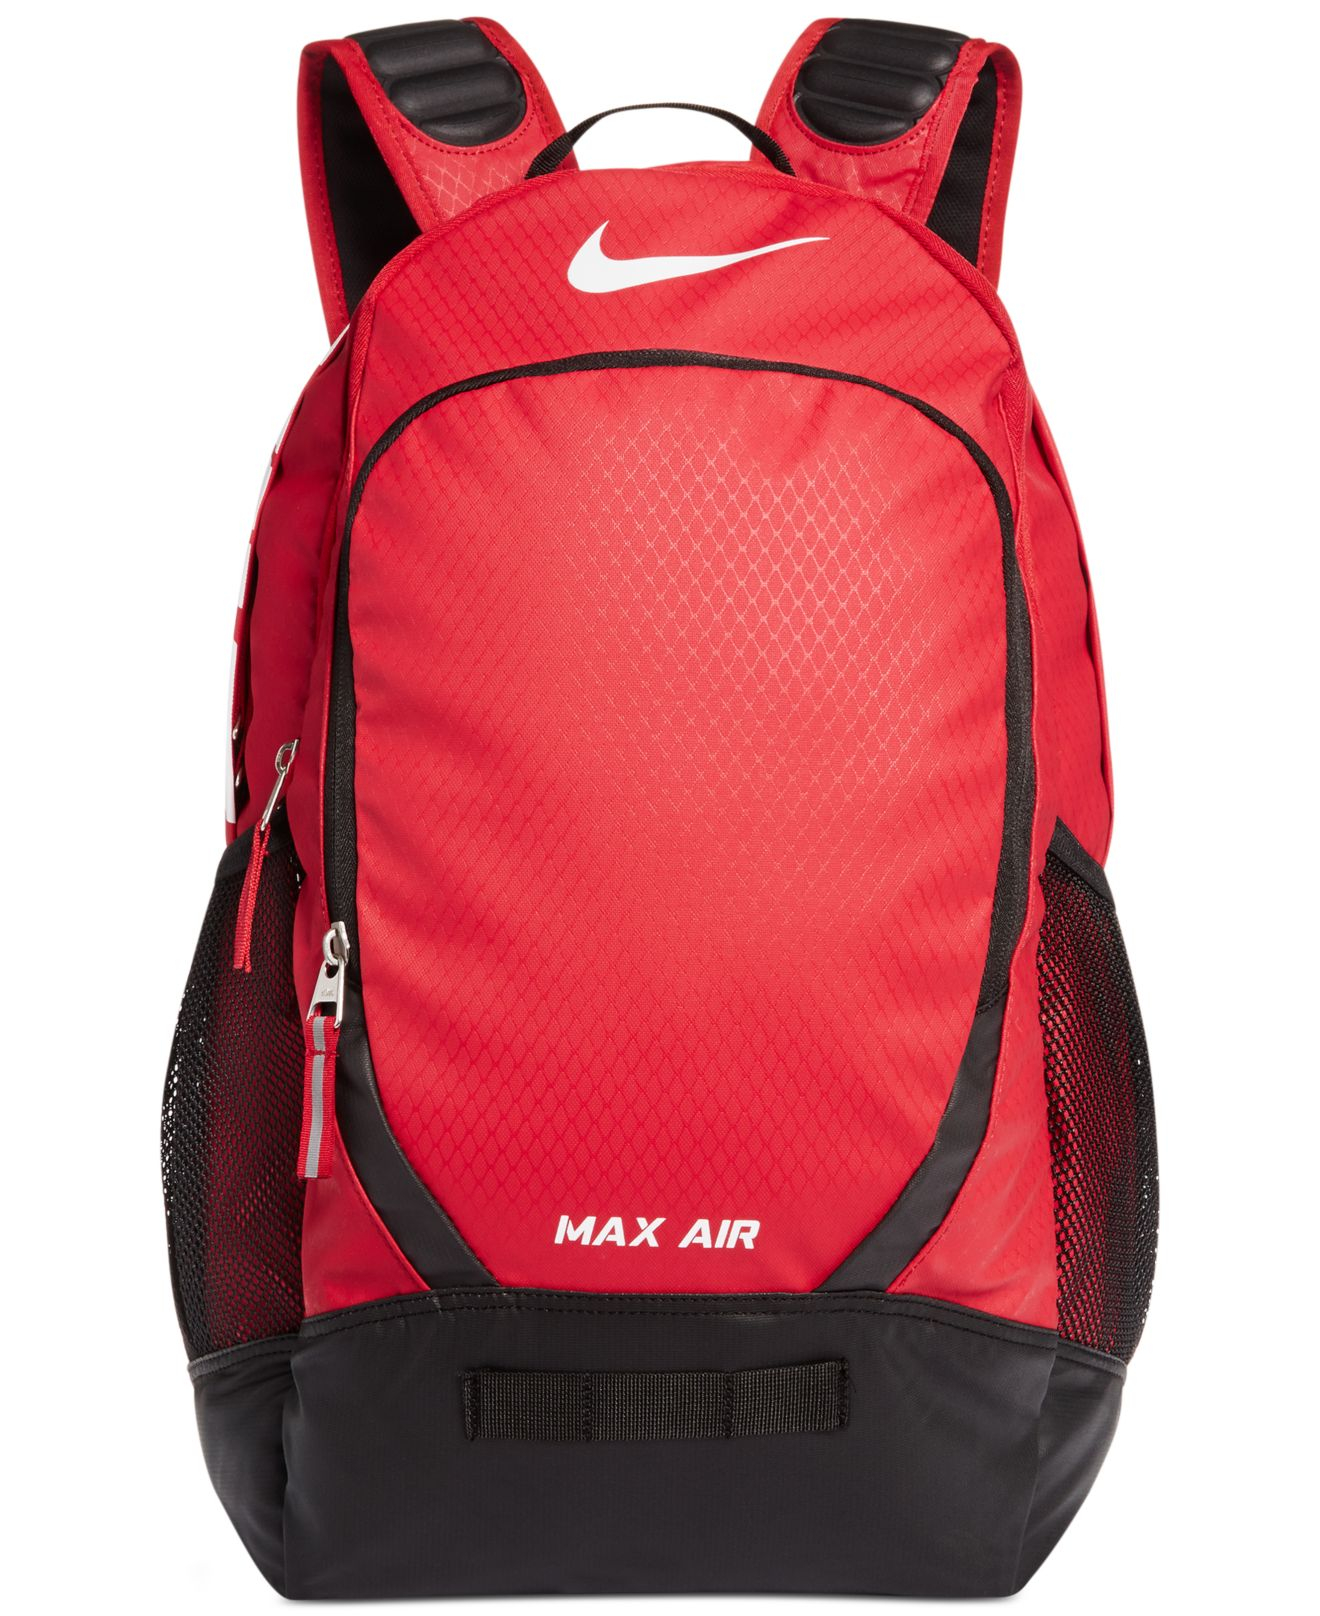 Red And Grey Nike Backpack - CEAGESP fd76fac00e82